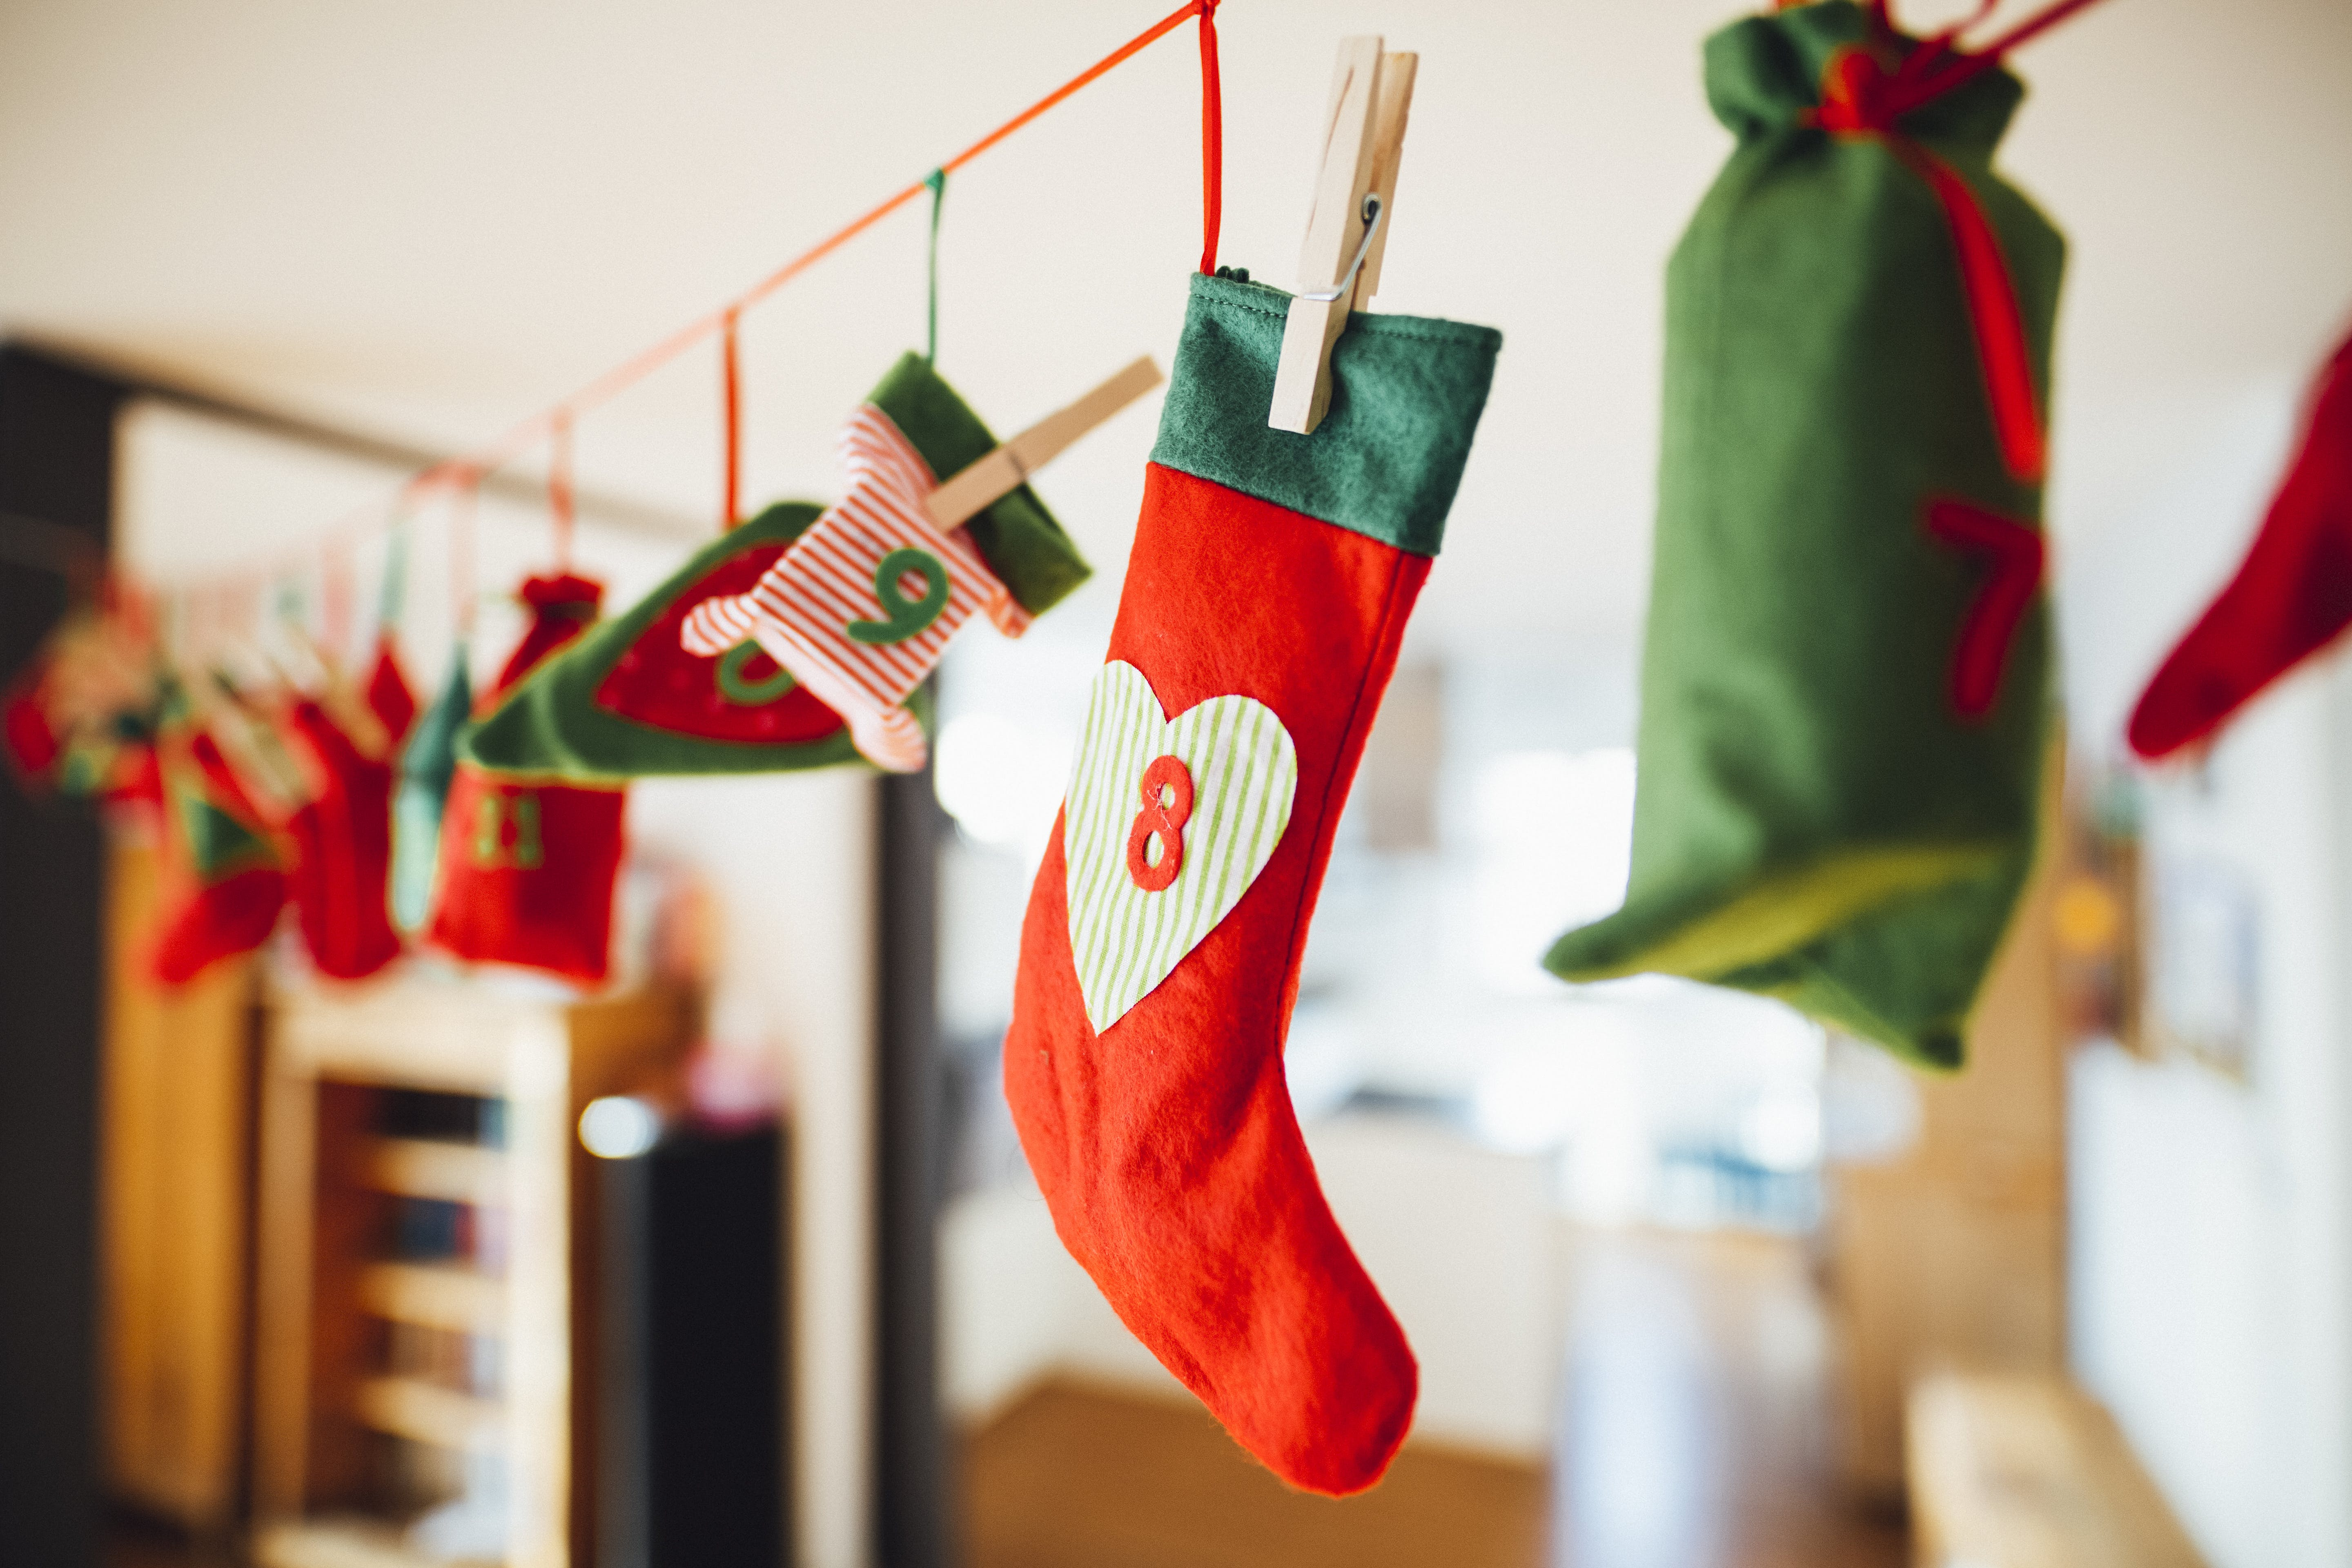 Red and Green Christmas Stocking Hanging Inside Room